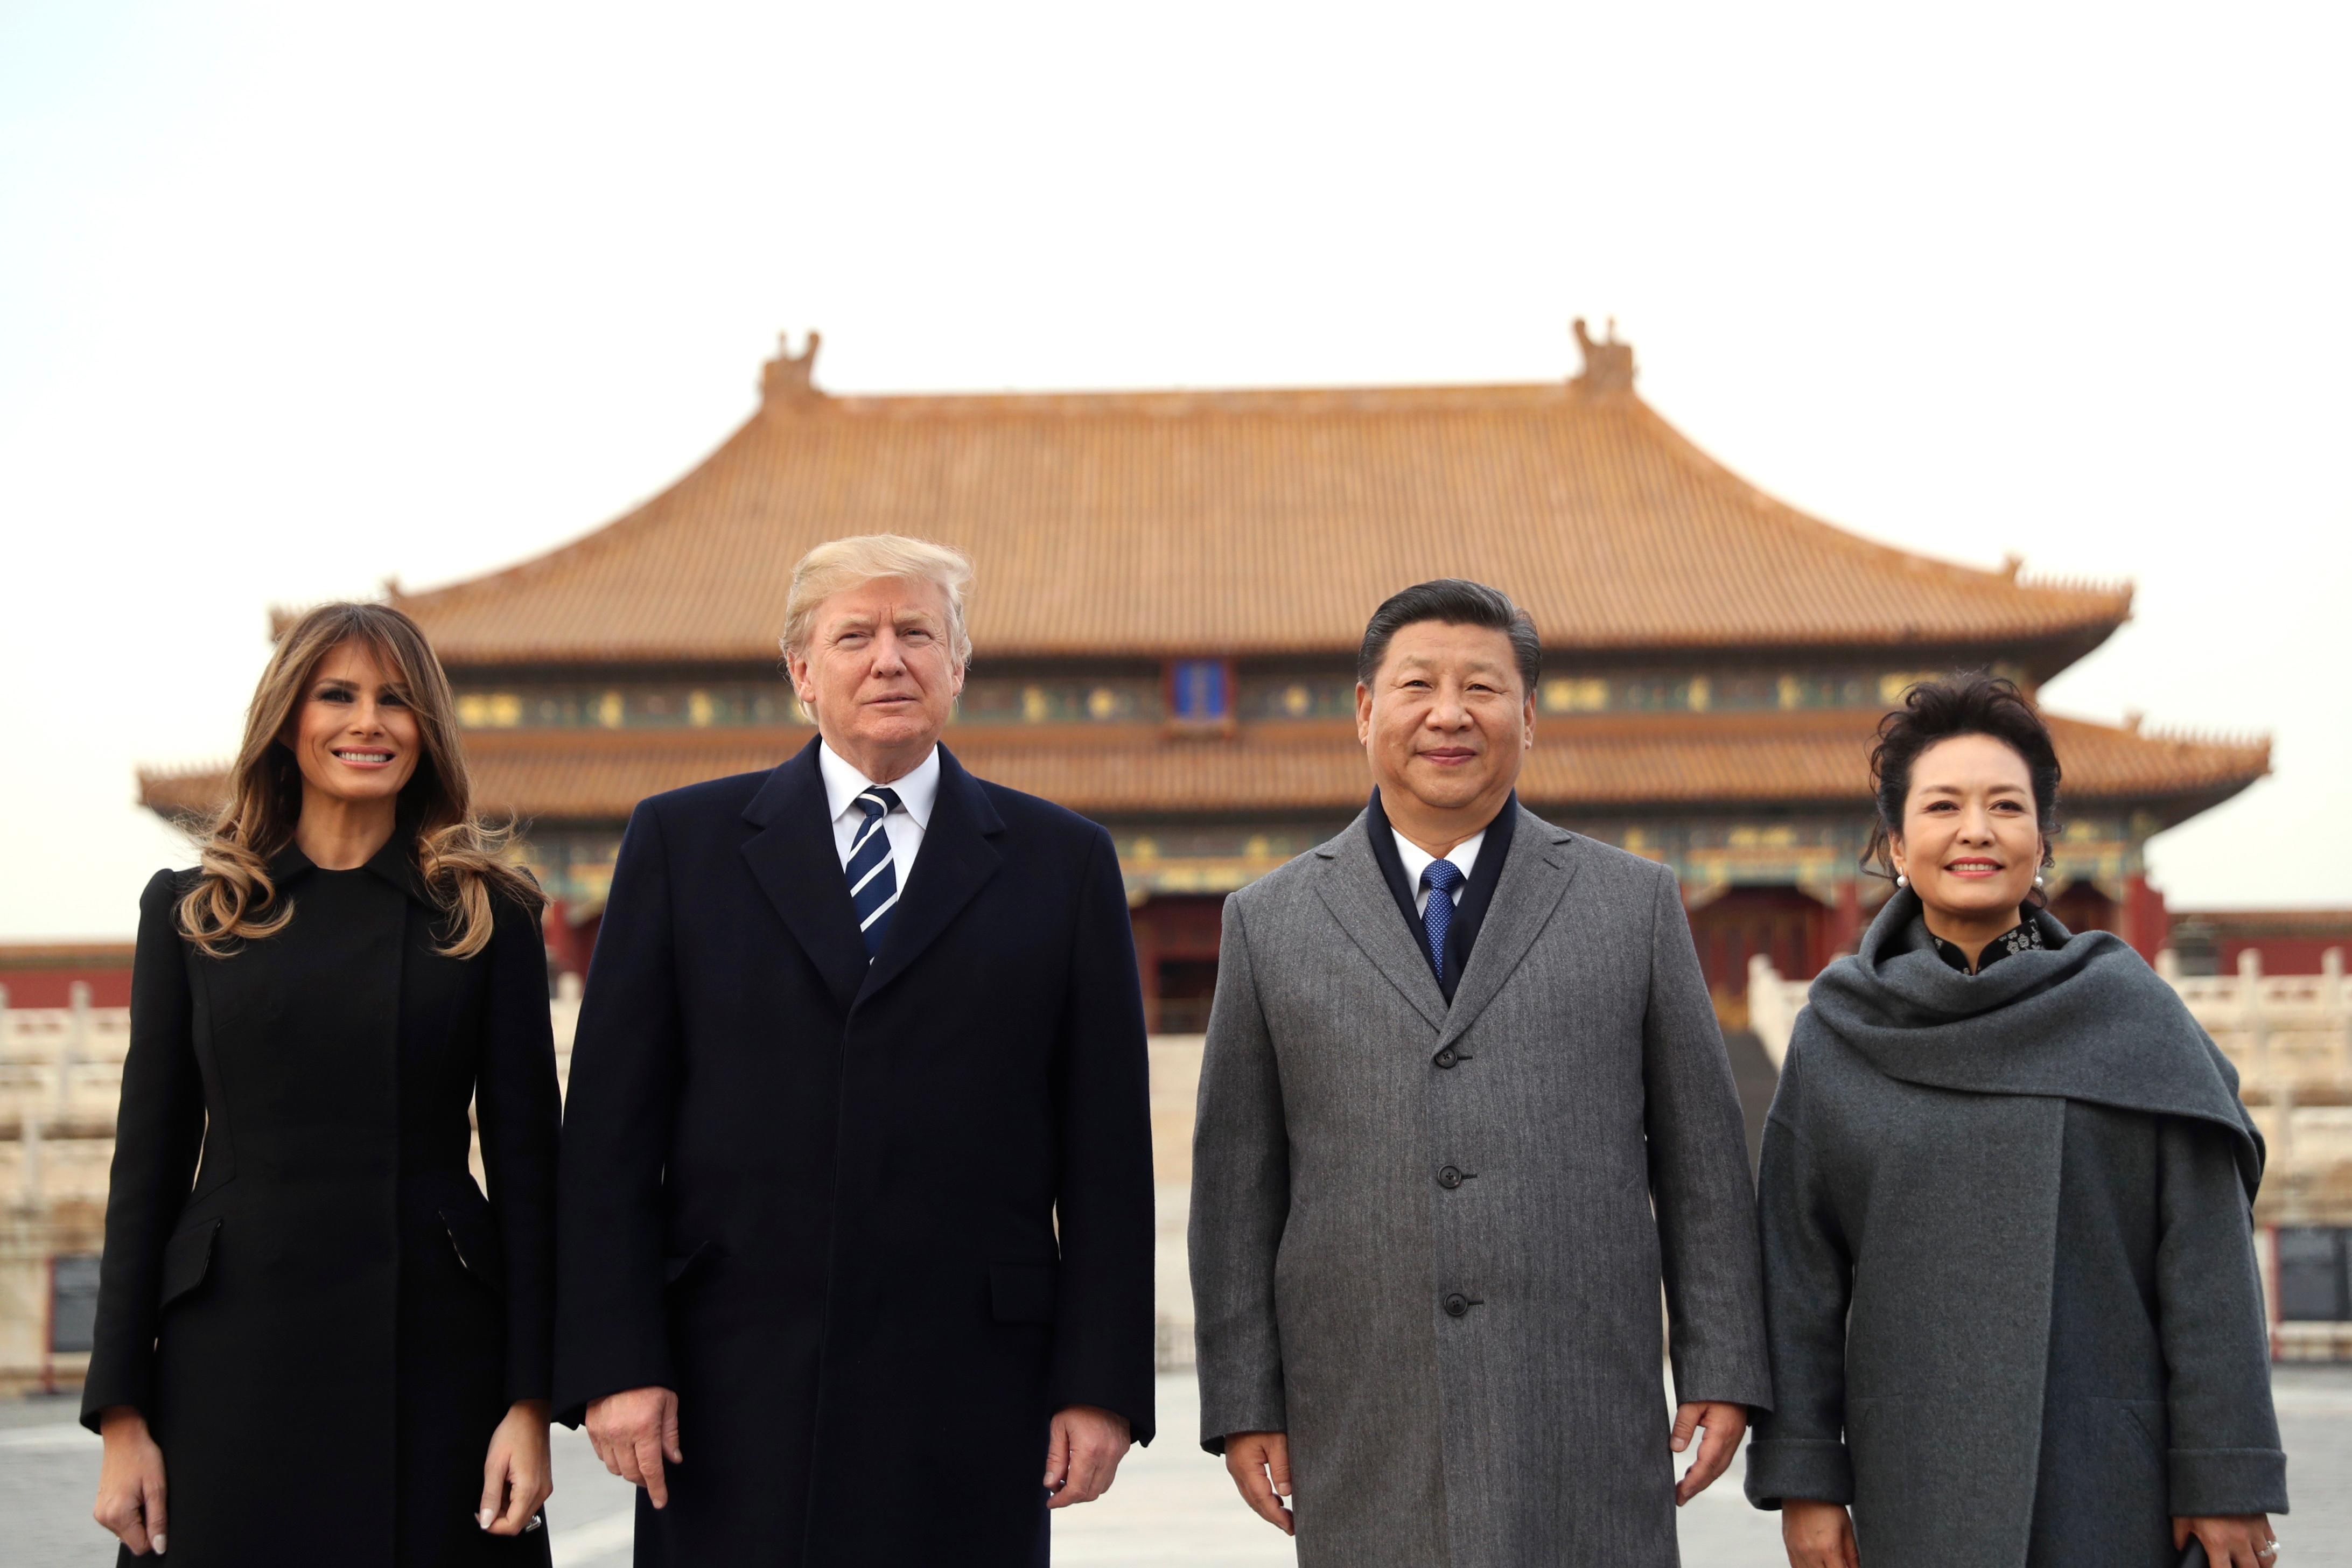 President Donald Trump, second left, first lady Melania Trump, left,  Chinese President Xi Jinping, second right, and his wife Peng Liyuan, right, stand together as they tour the Forbidden City, Wednesday, Nov. 8, 2017, in Beijing, China. Trump is on a five country trip through Asia traveling to Japan, South Korea, China, Vietnam and the Philippines. (AP Photo/Andrew Harnik)